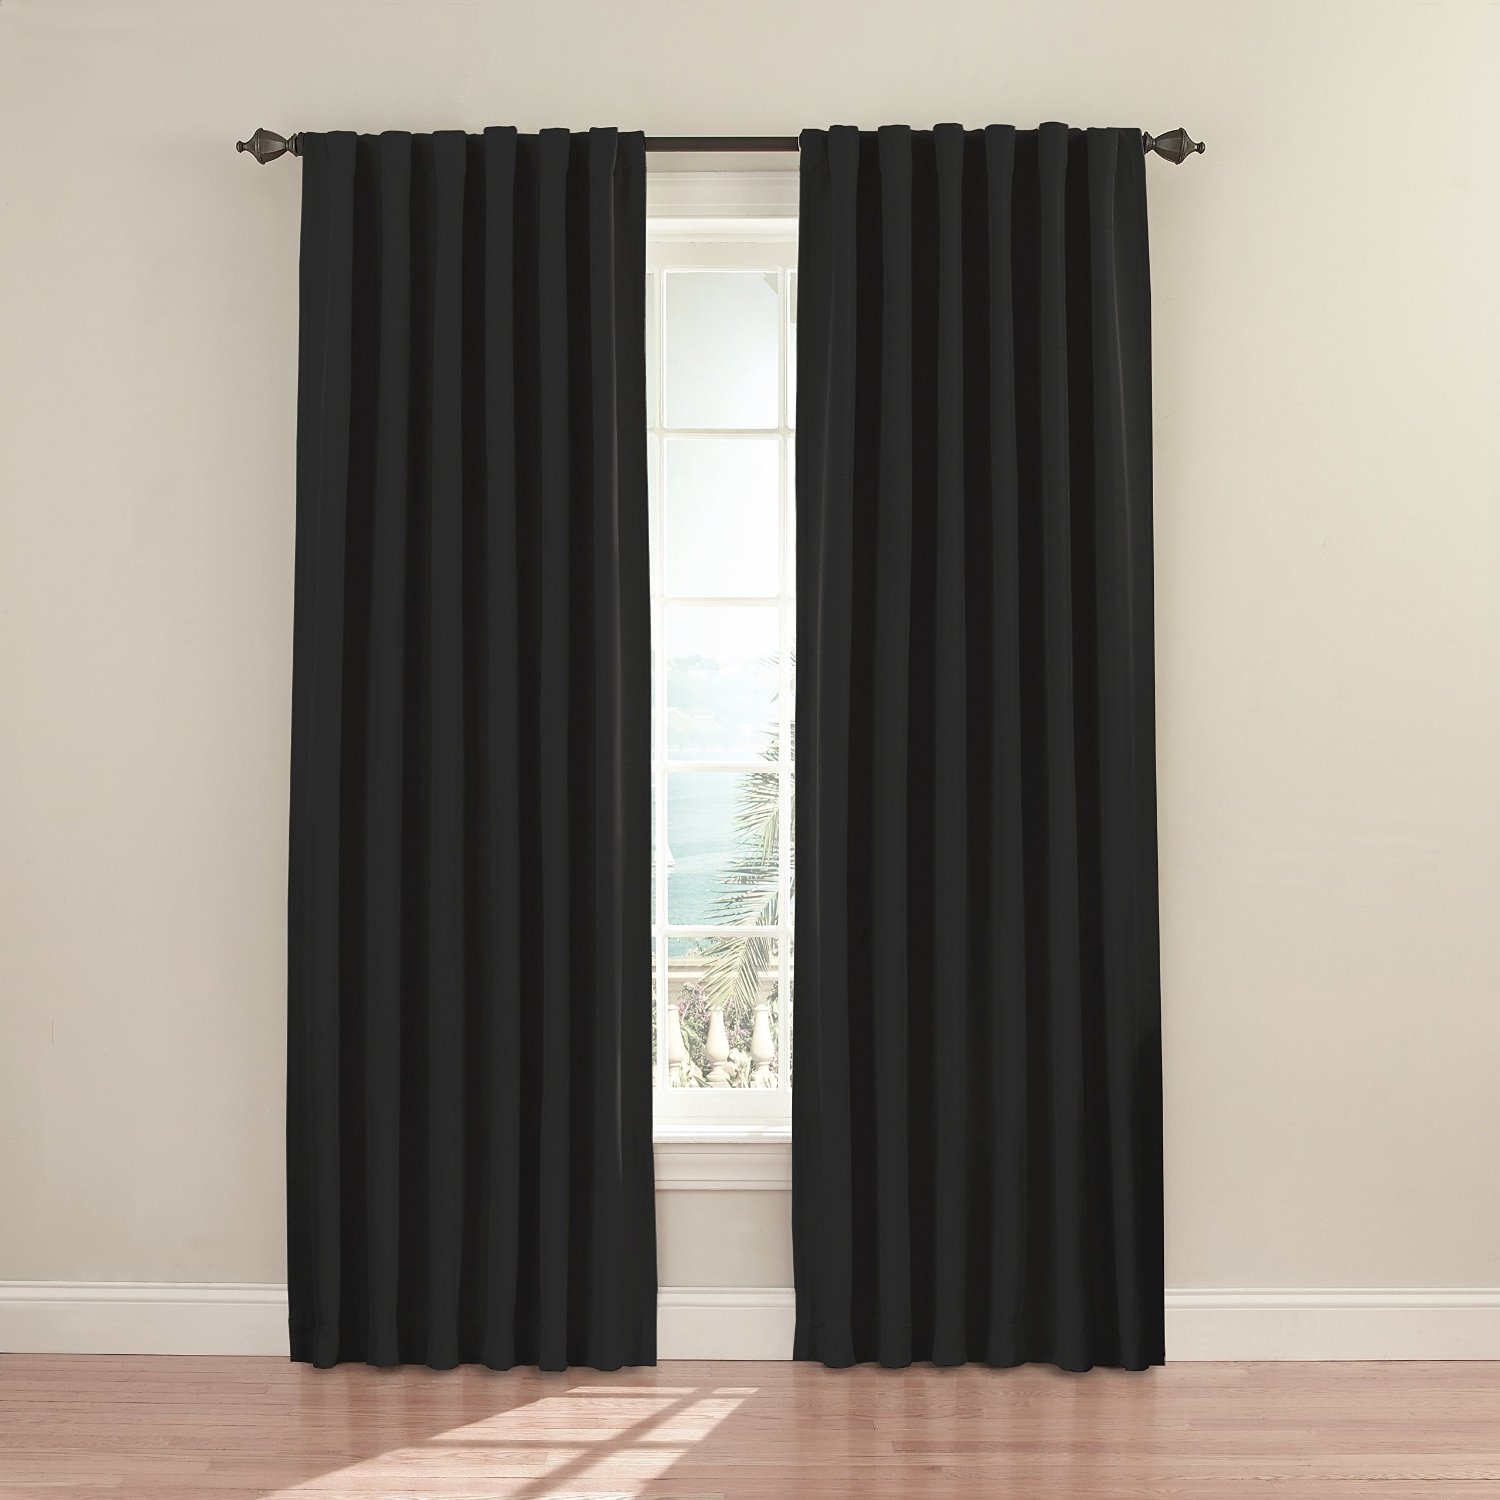 Top 15 Noise And Light Blocking Curtains Curtain Ideas